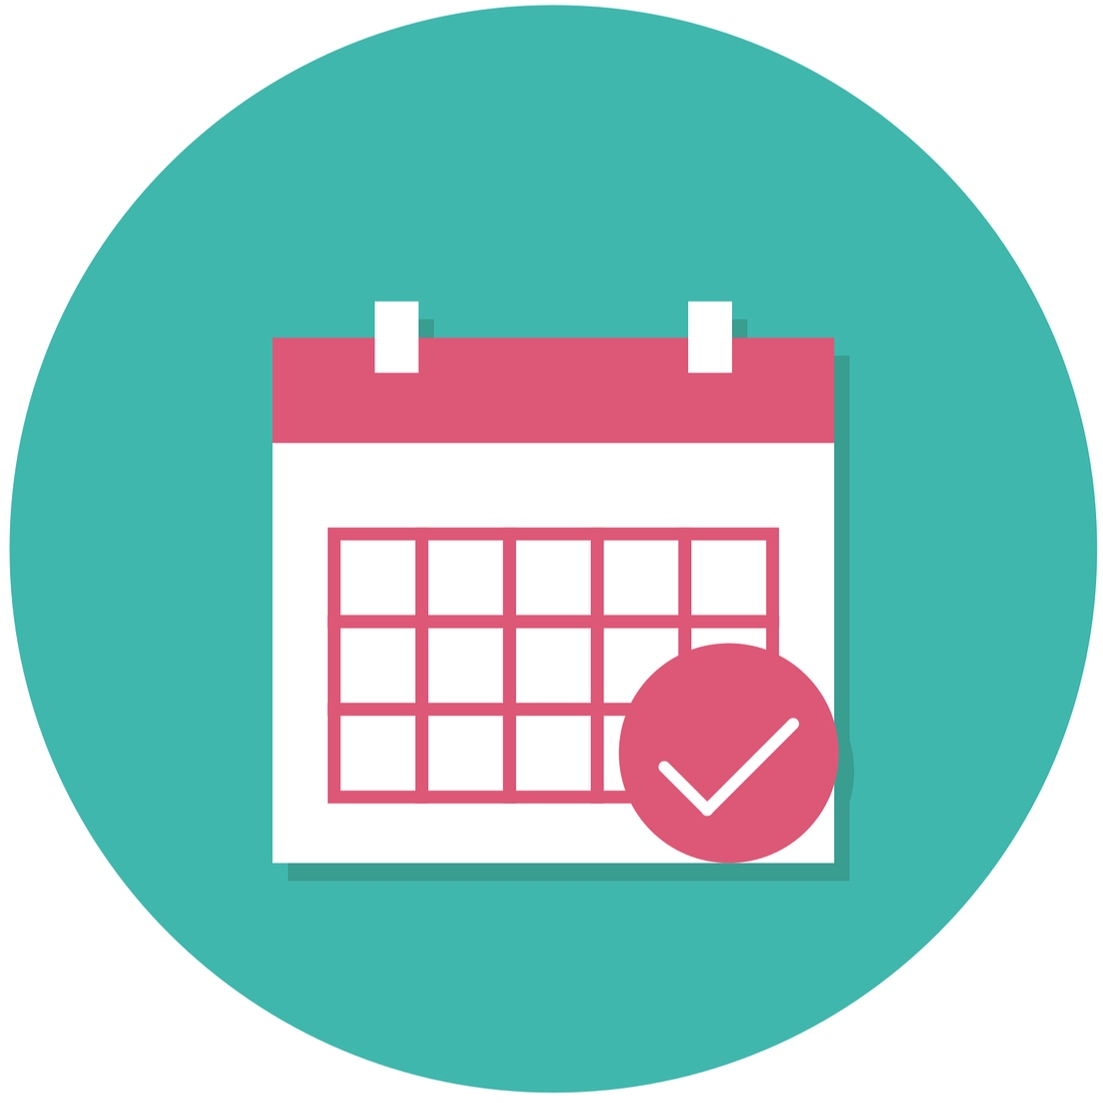 Keep up to date and engage with fellow Civicas members by attending Civicas and community events listed on our    Civic Calendar   .